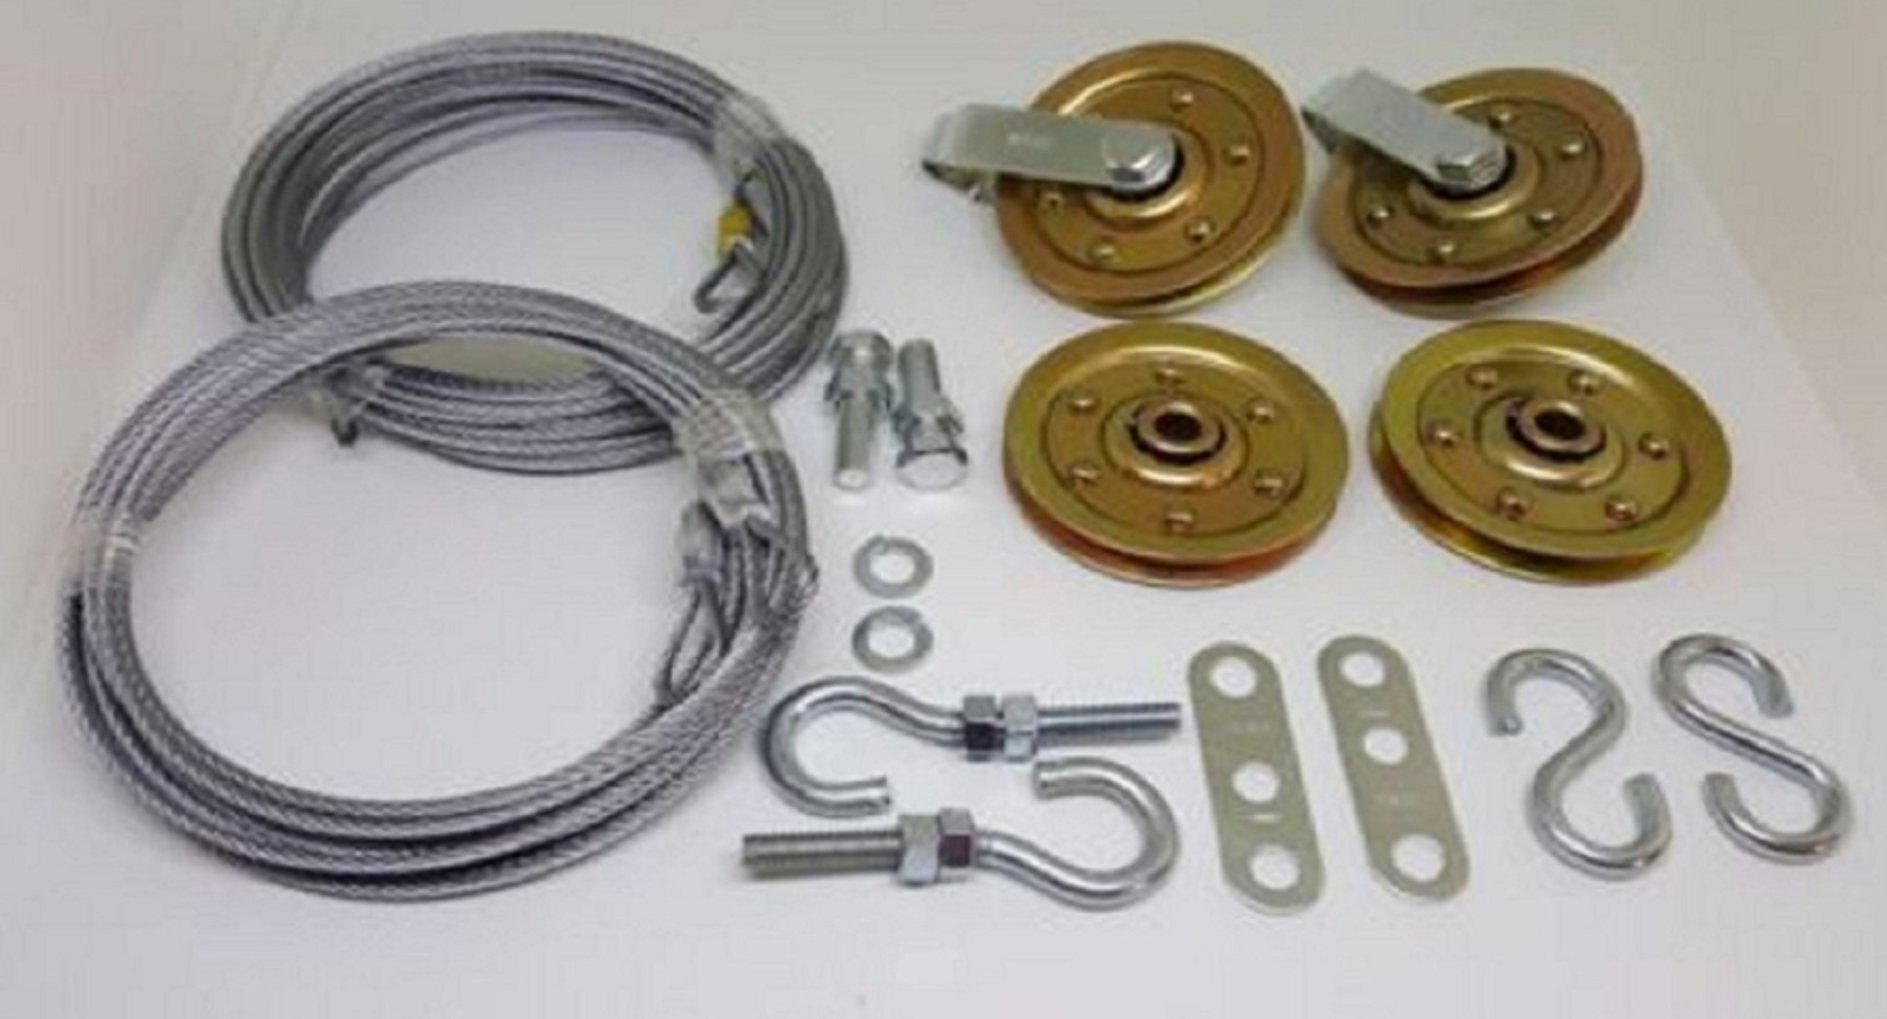 USA Premium Store Garage door extension spring Extra Heavy Duty pulley sheave kit & SAFETY CABLE